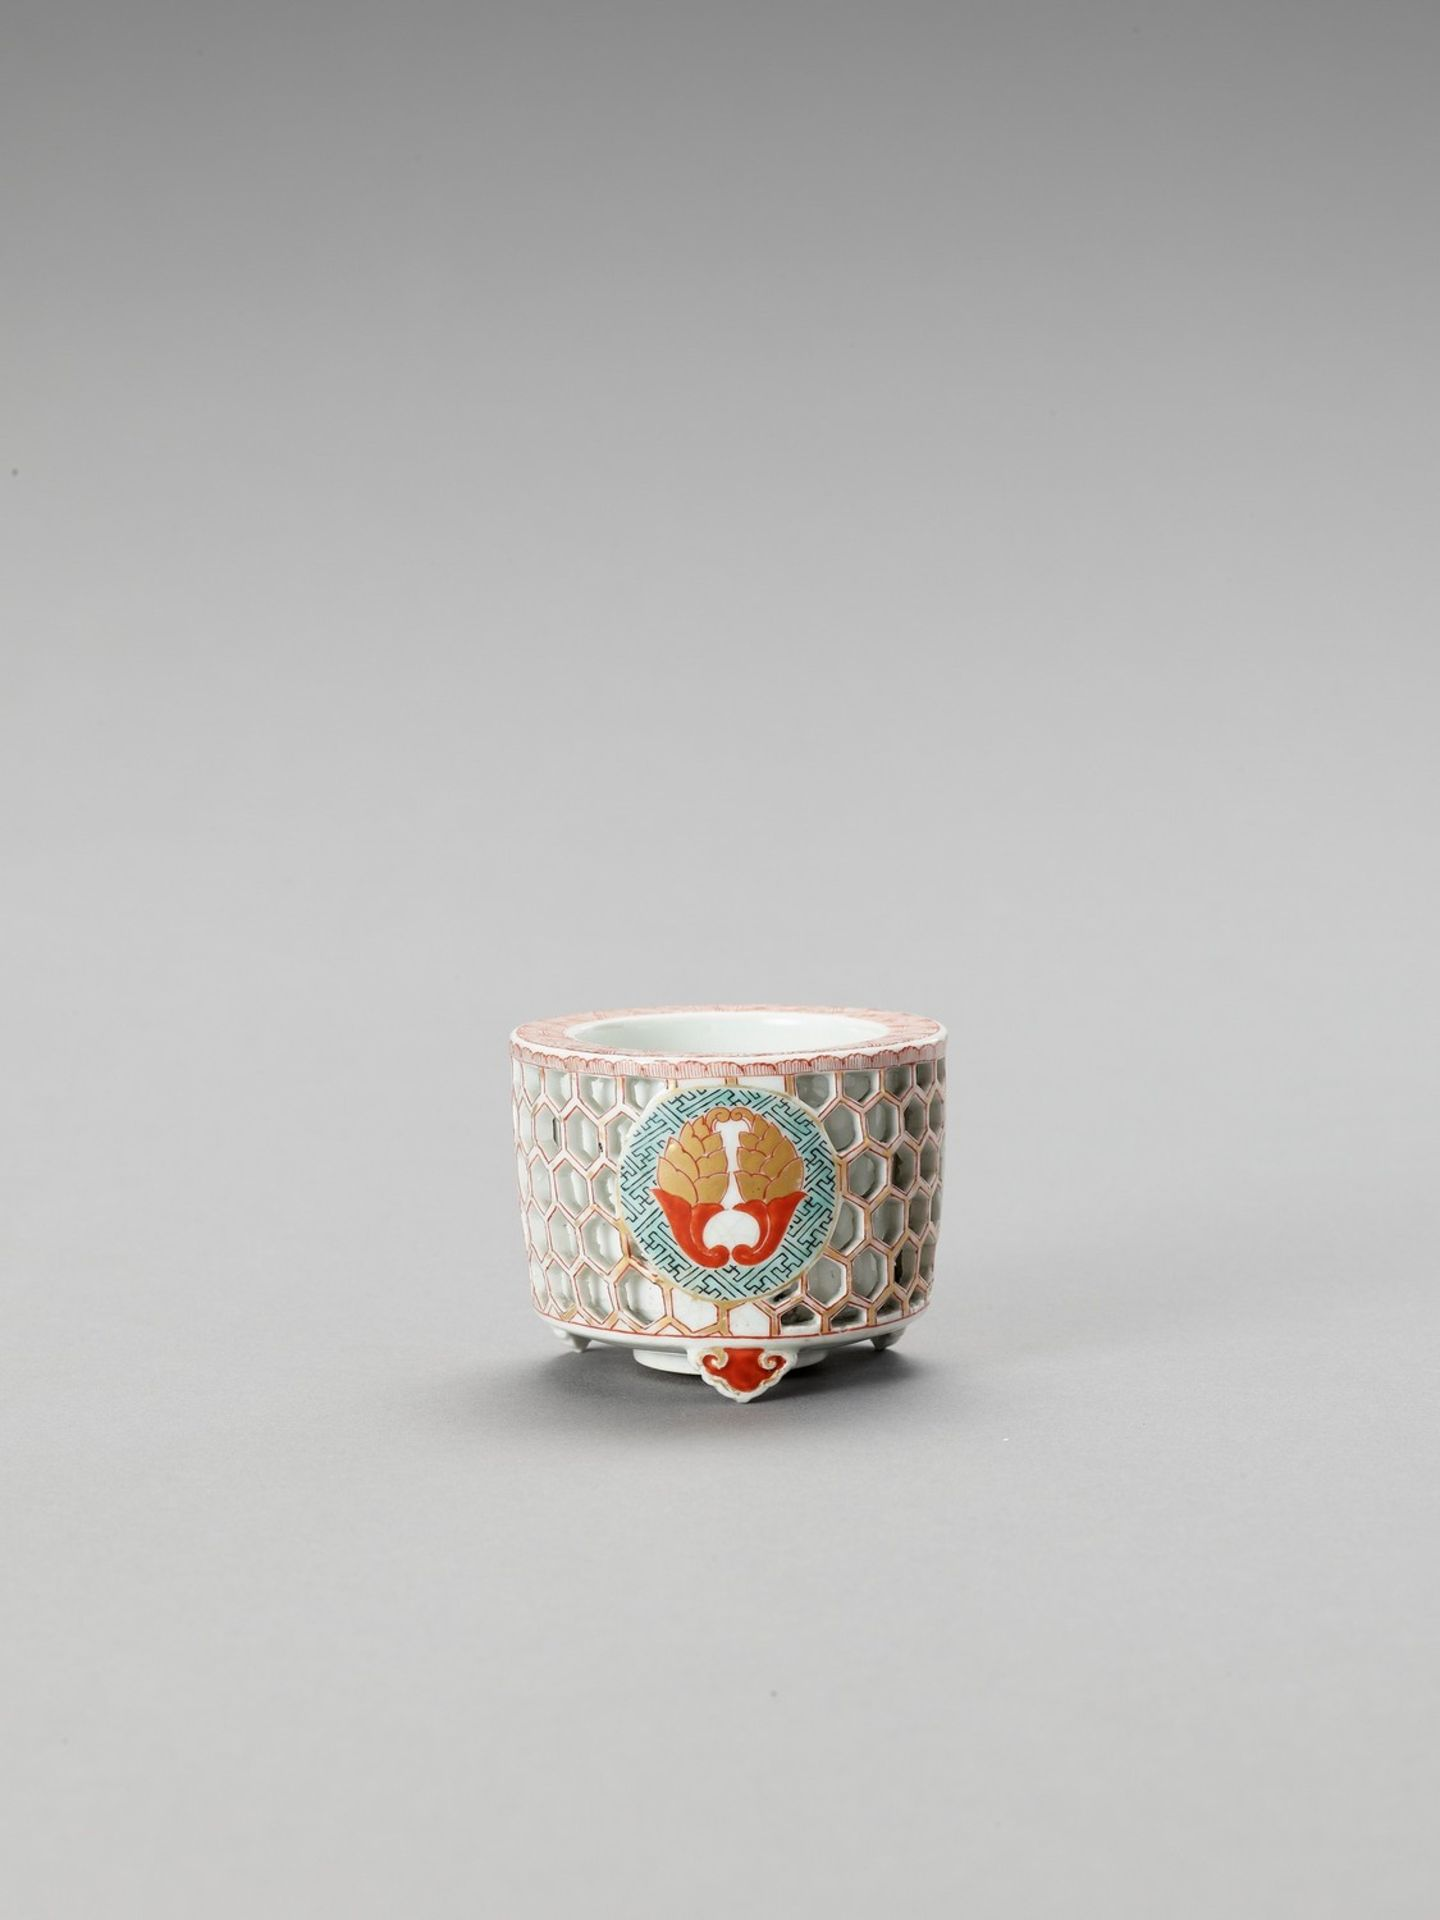 A RETICULATED IMARI PORCELAIN CENSER